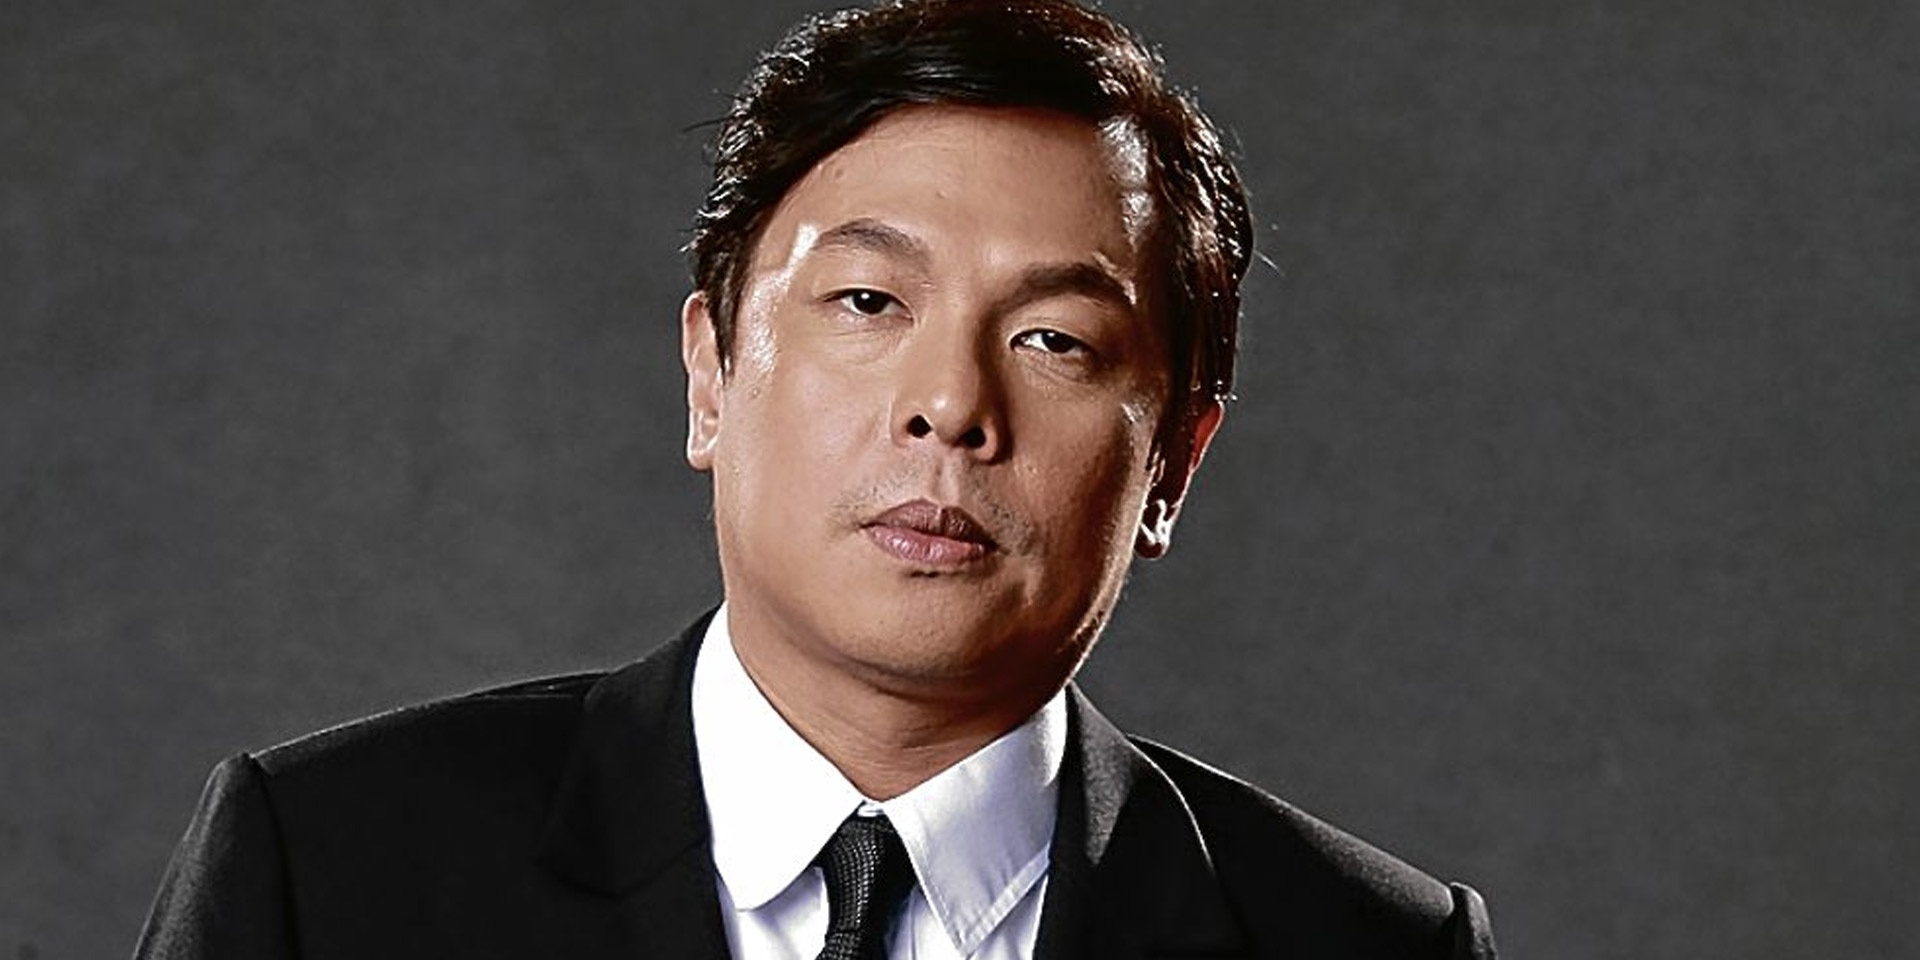 Jett Pangan to play Sweeney Todd in 40th anniversary production